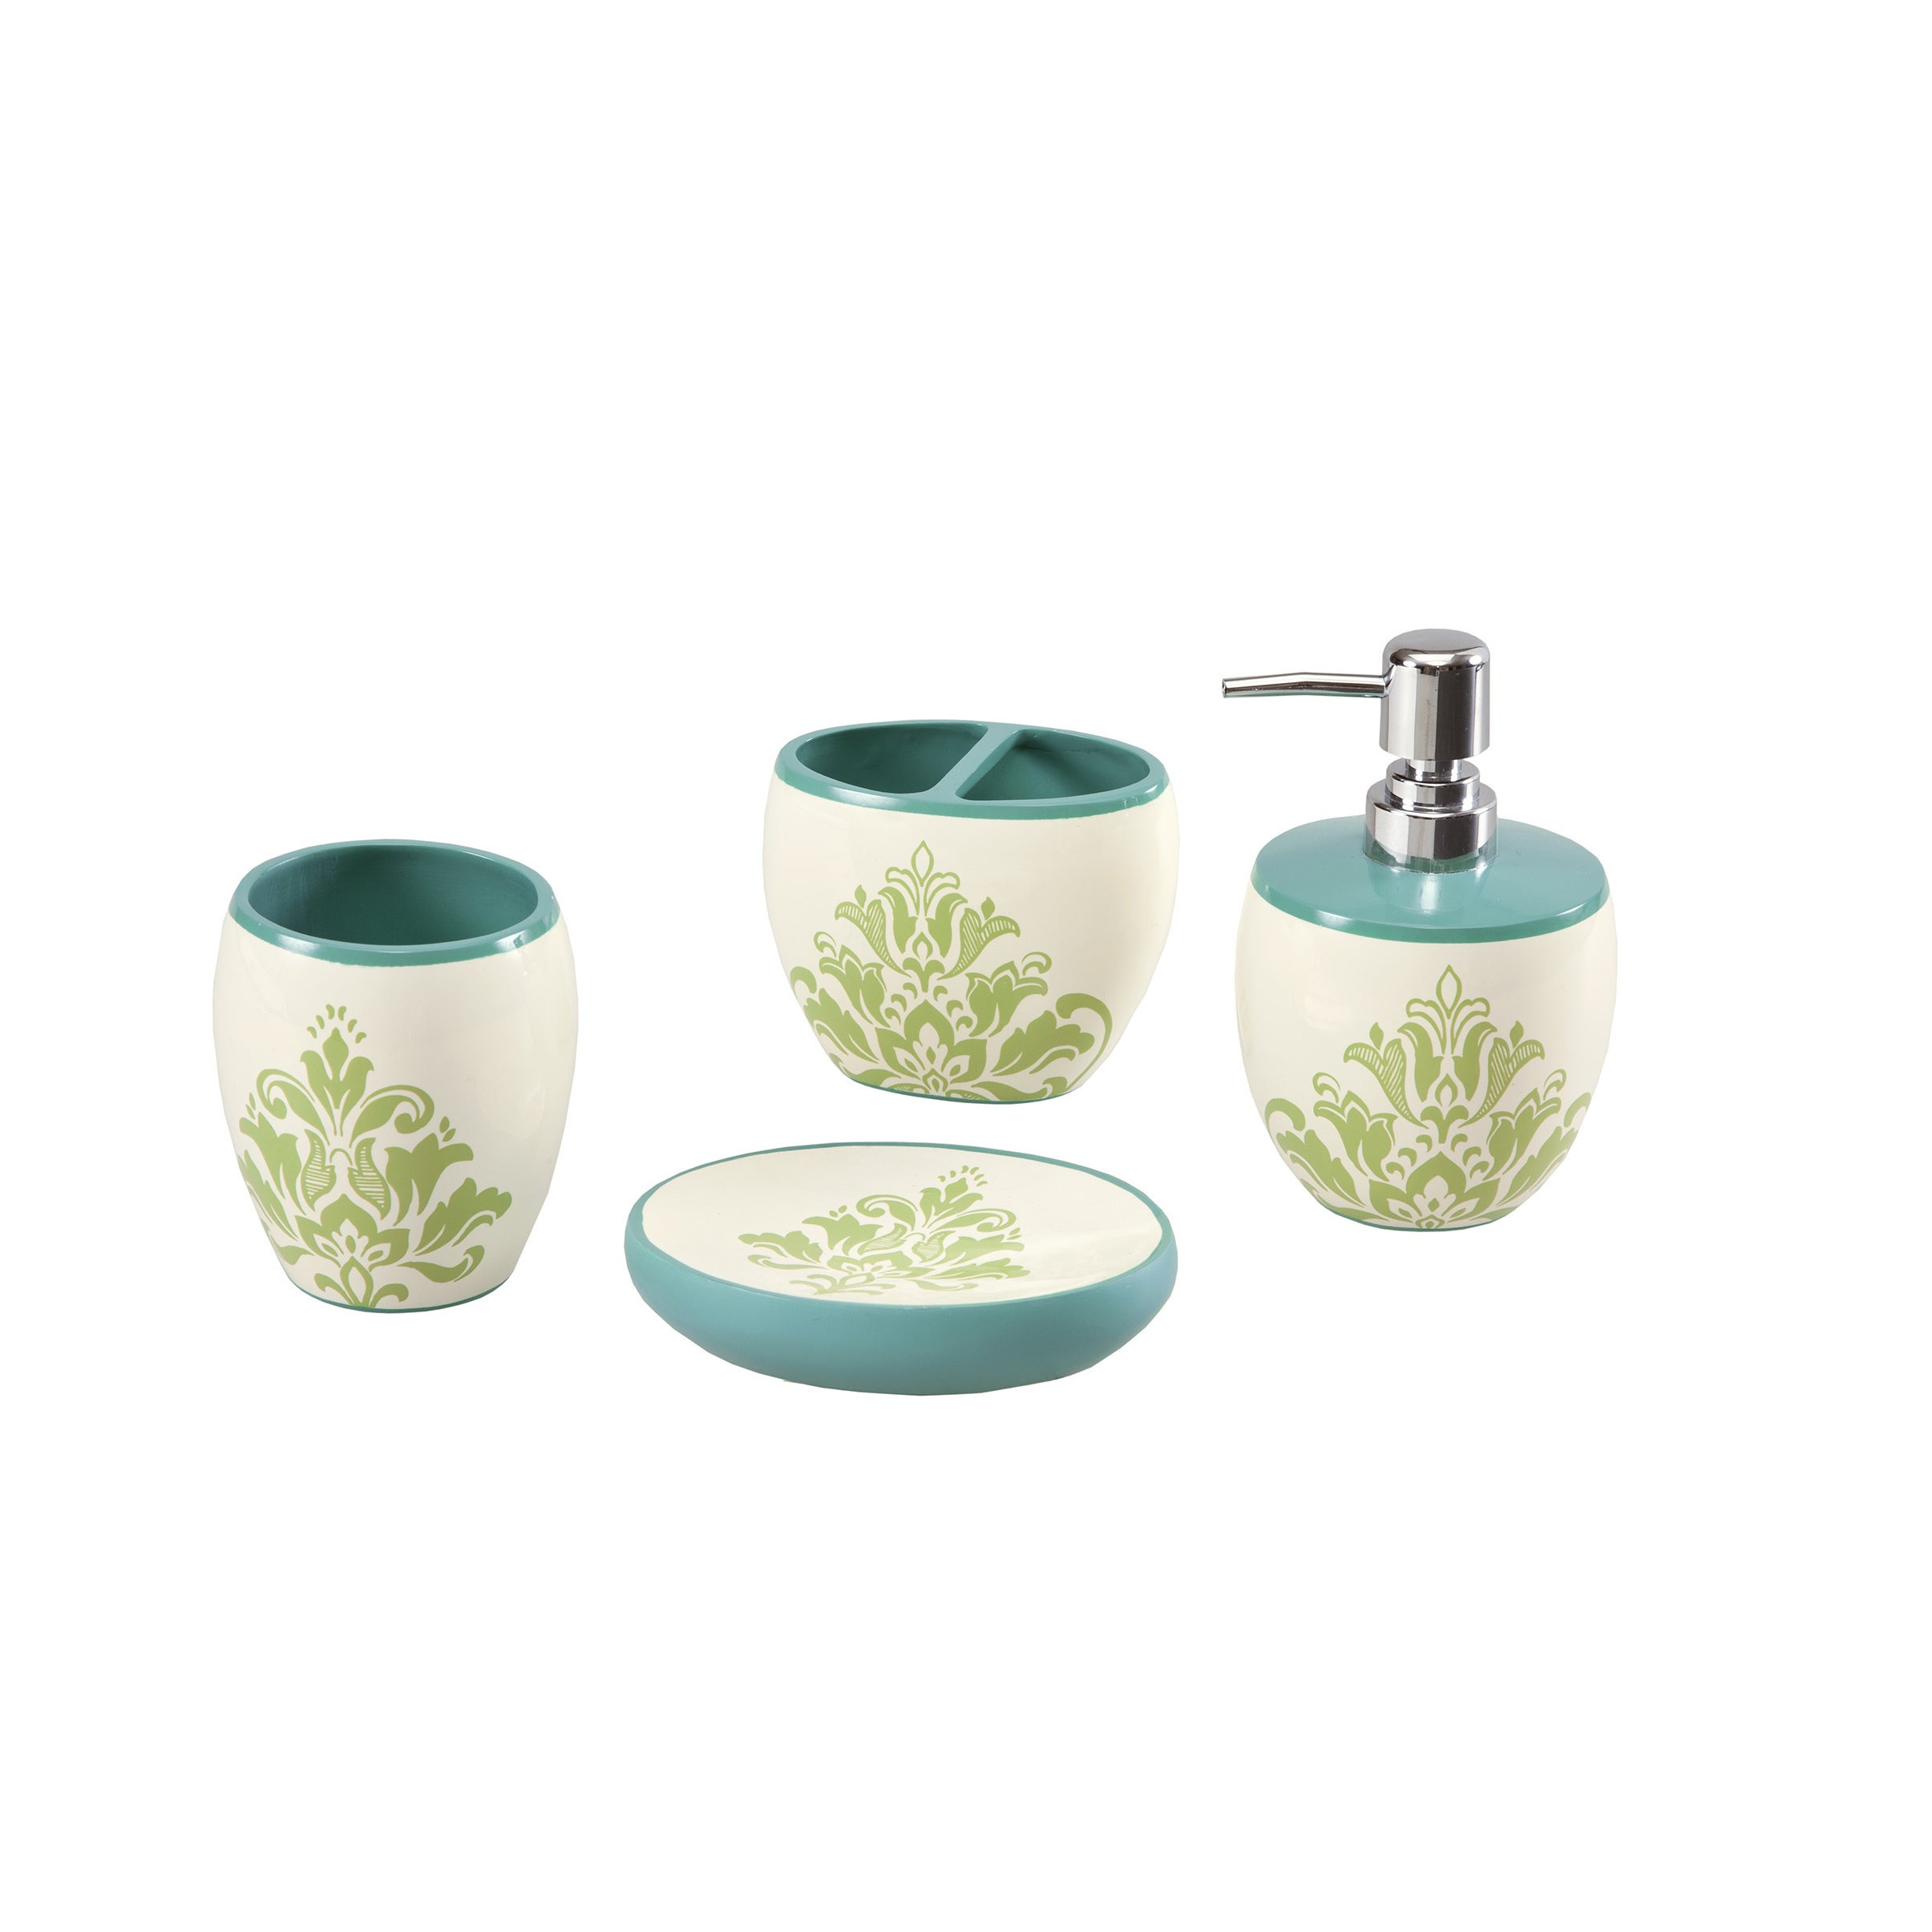 Stunning Teal Bathroom Accessories Sets 2410 x 2410 · 424 kB · jpeg